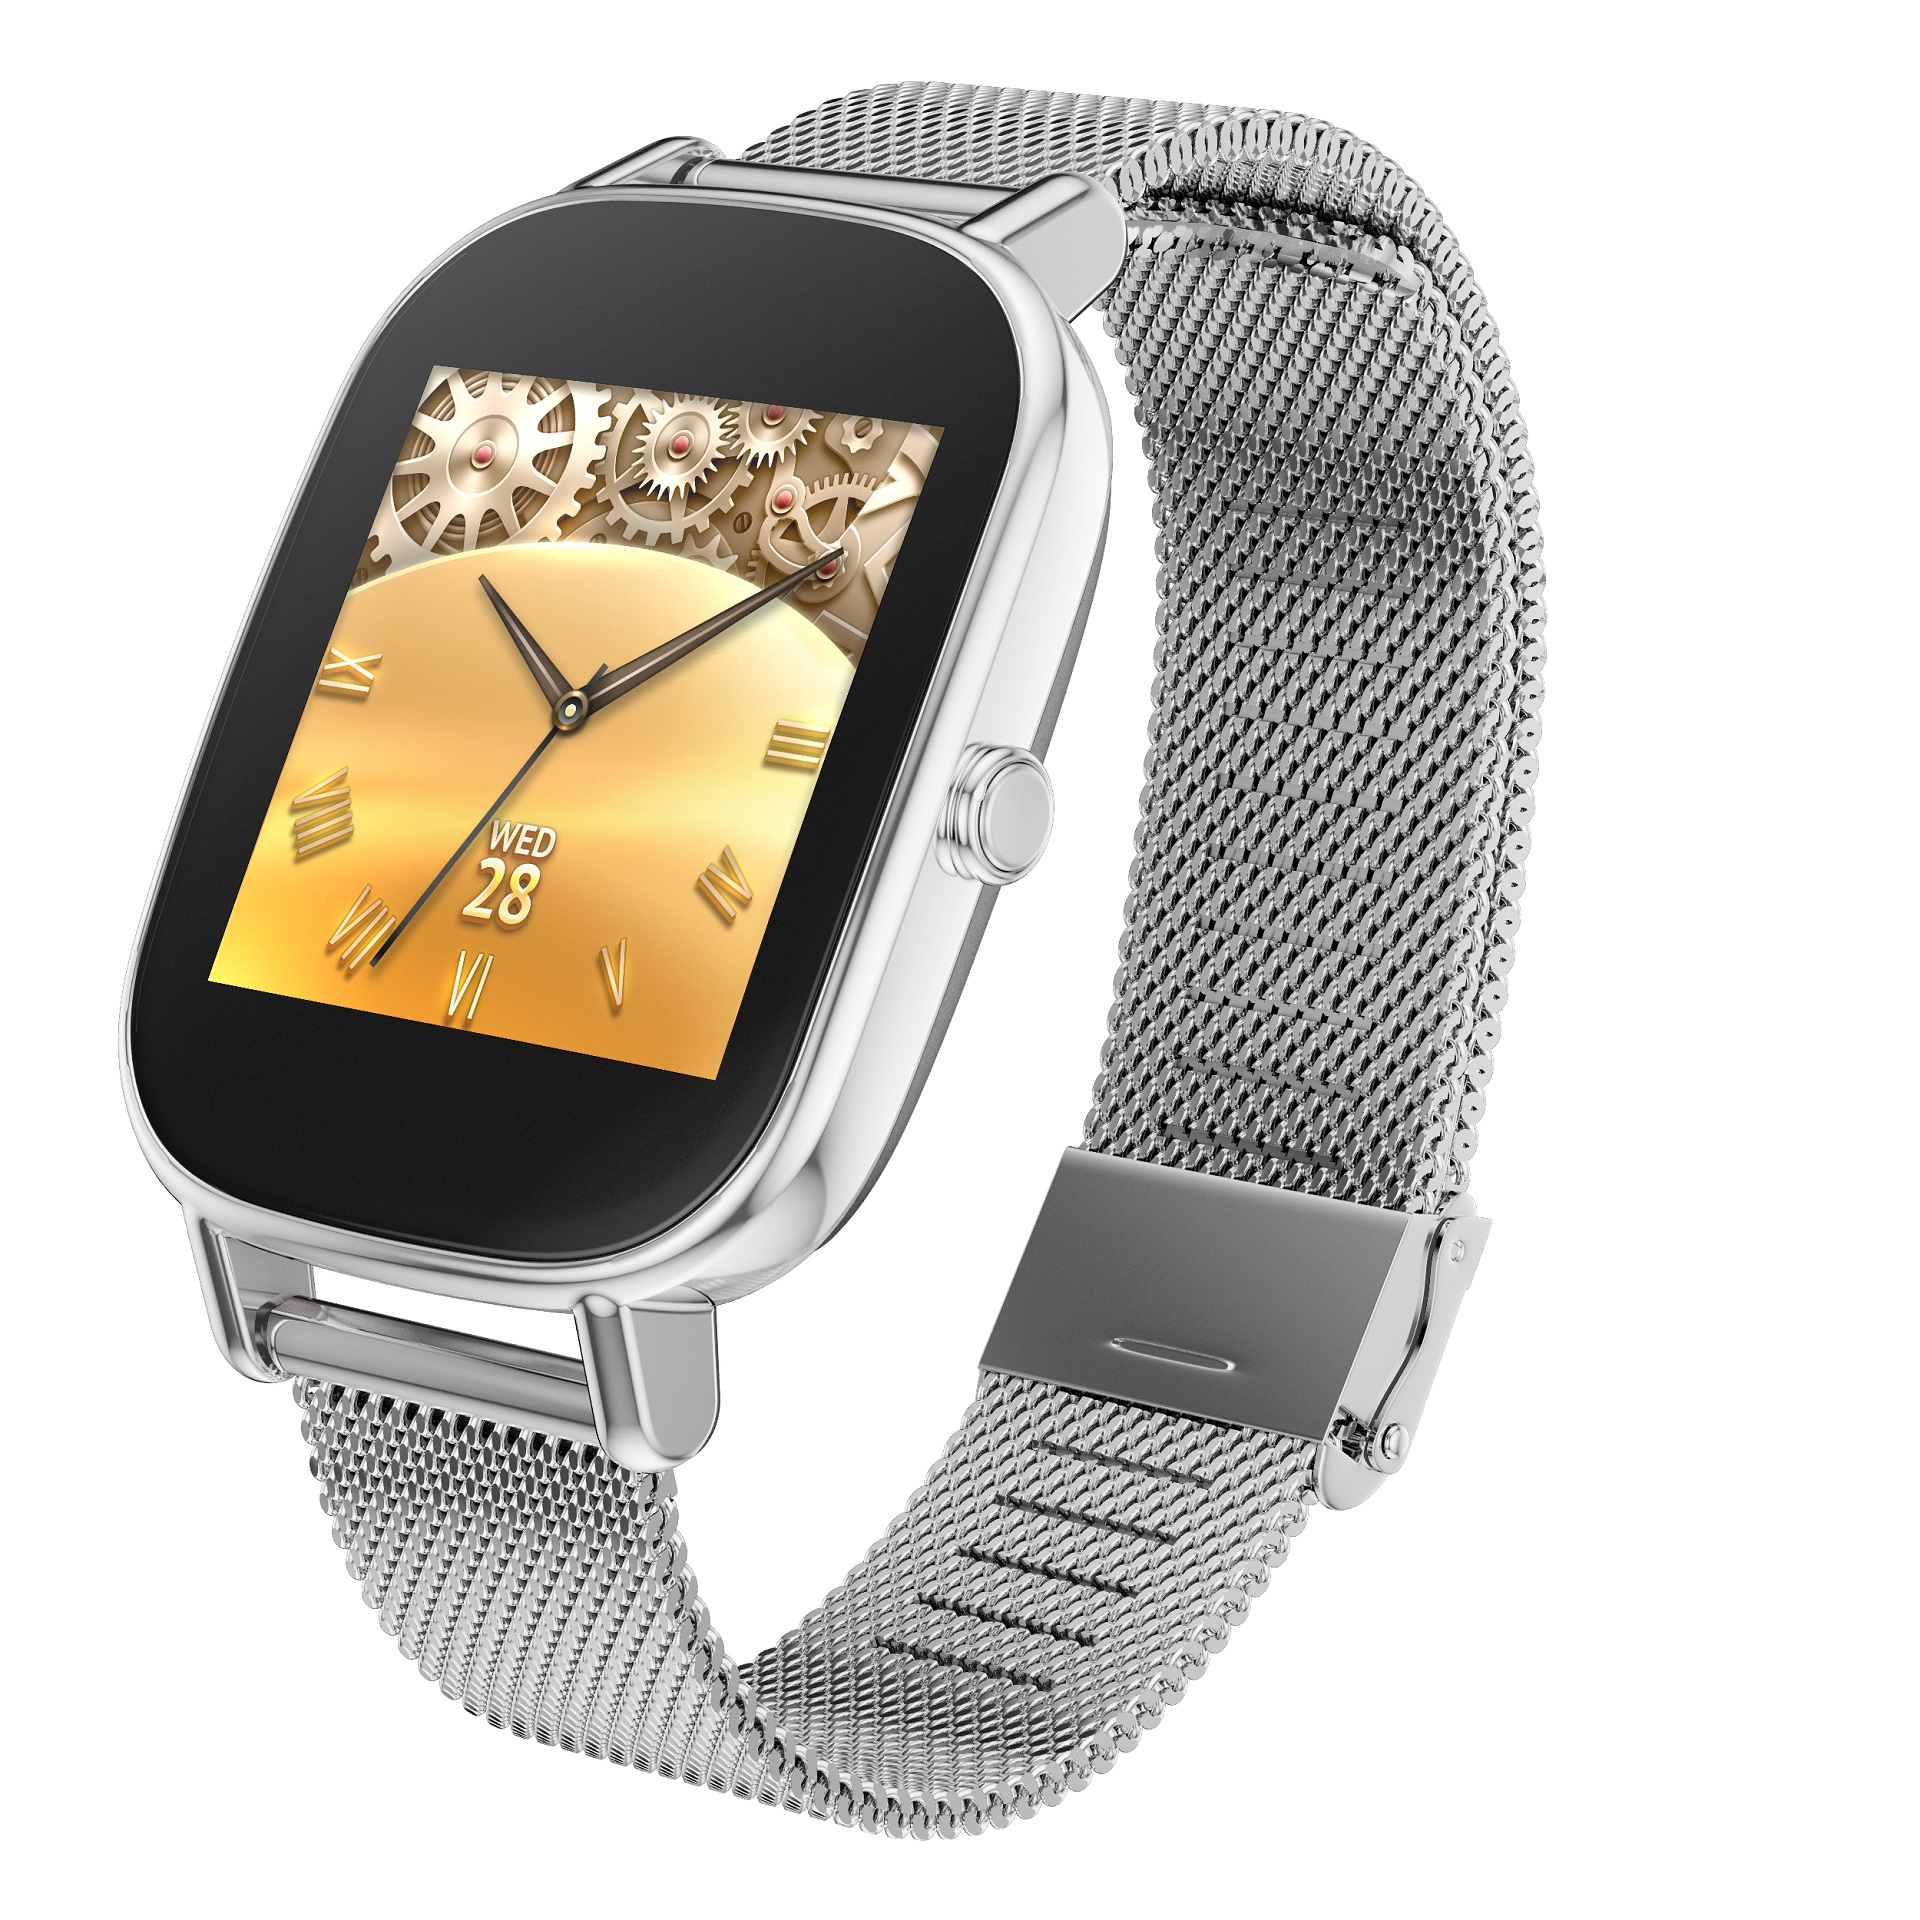 ASUS ZenWatch 2 - The Next Generation Android Wear